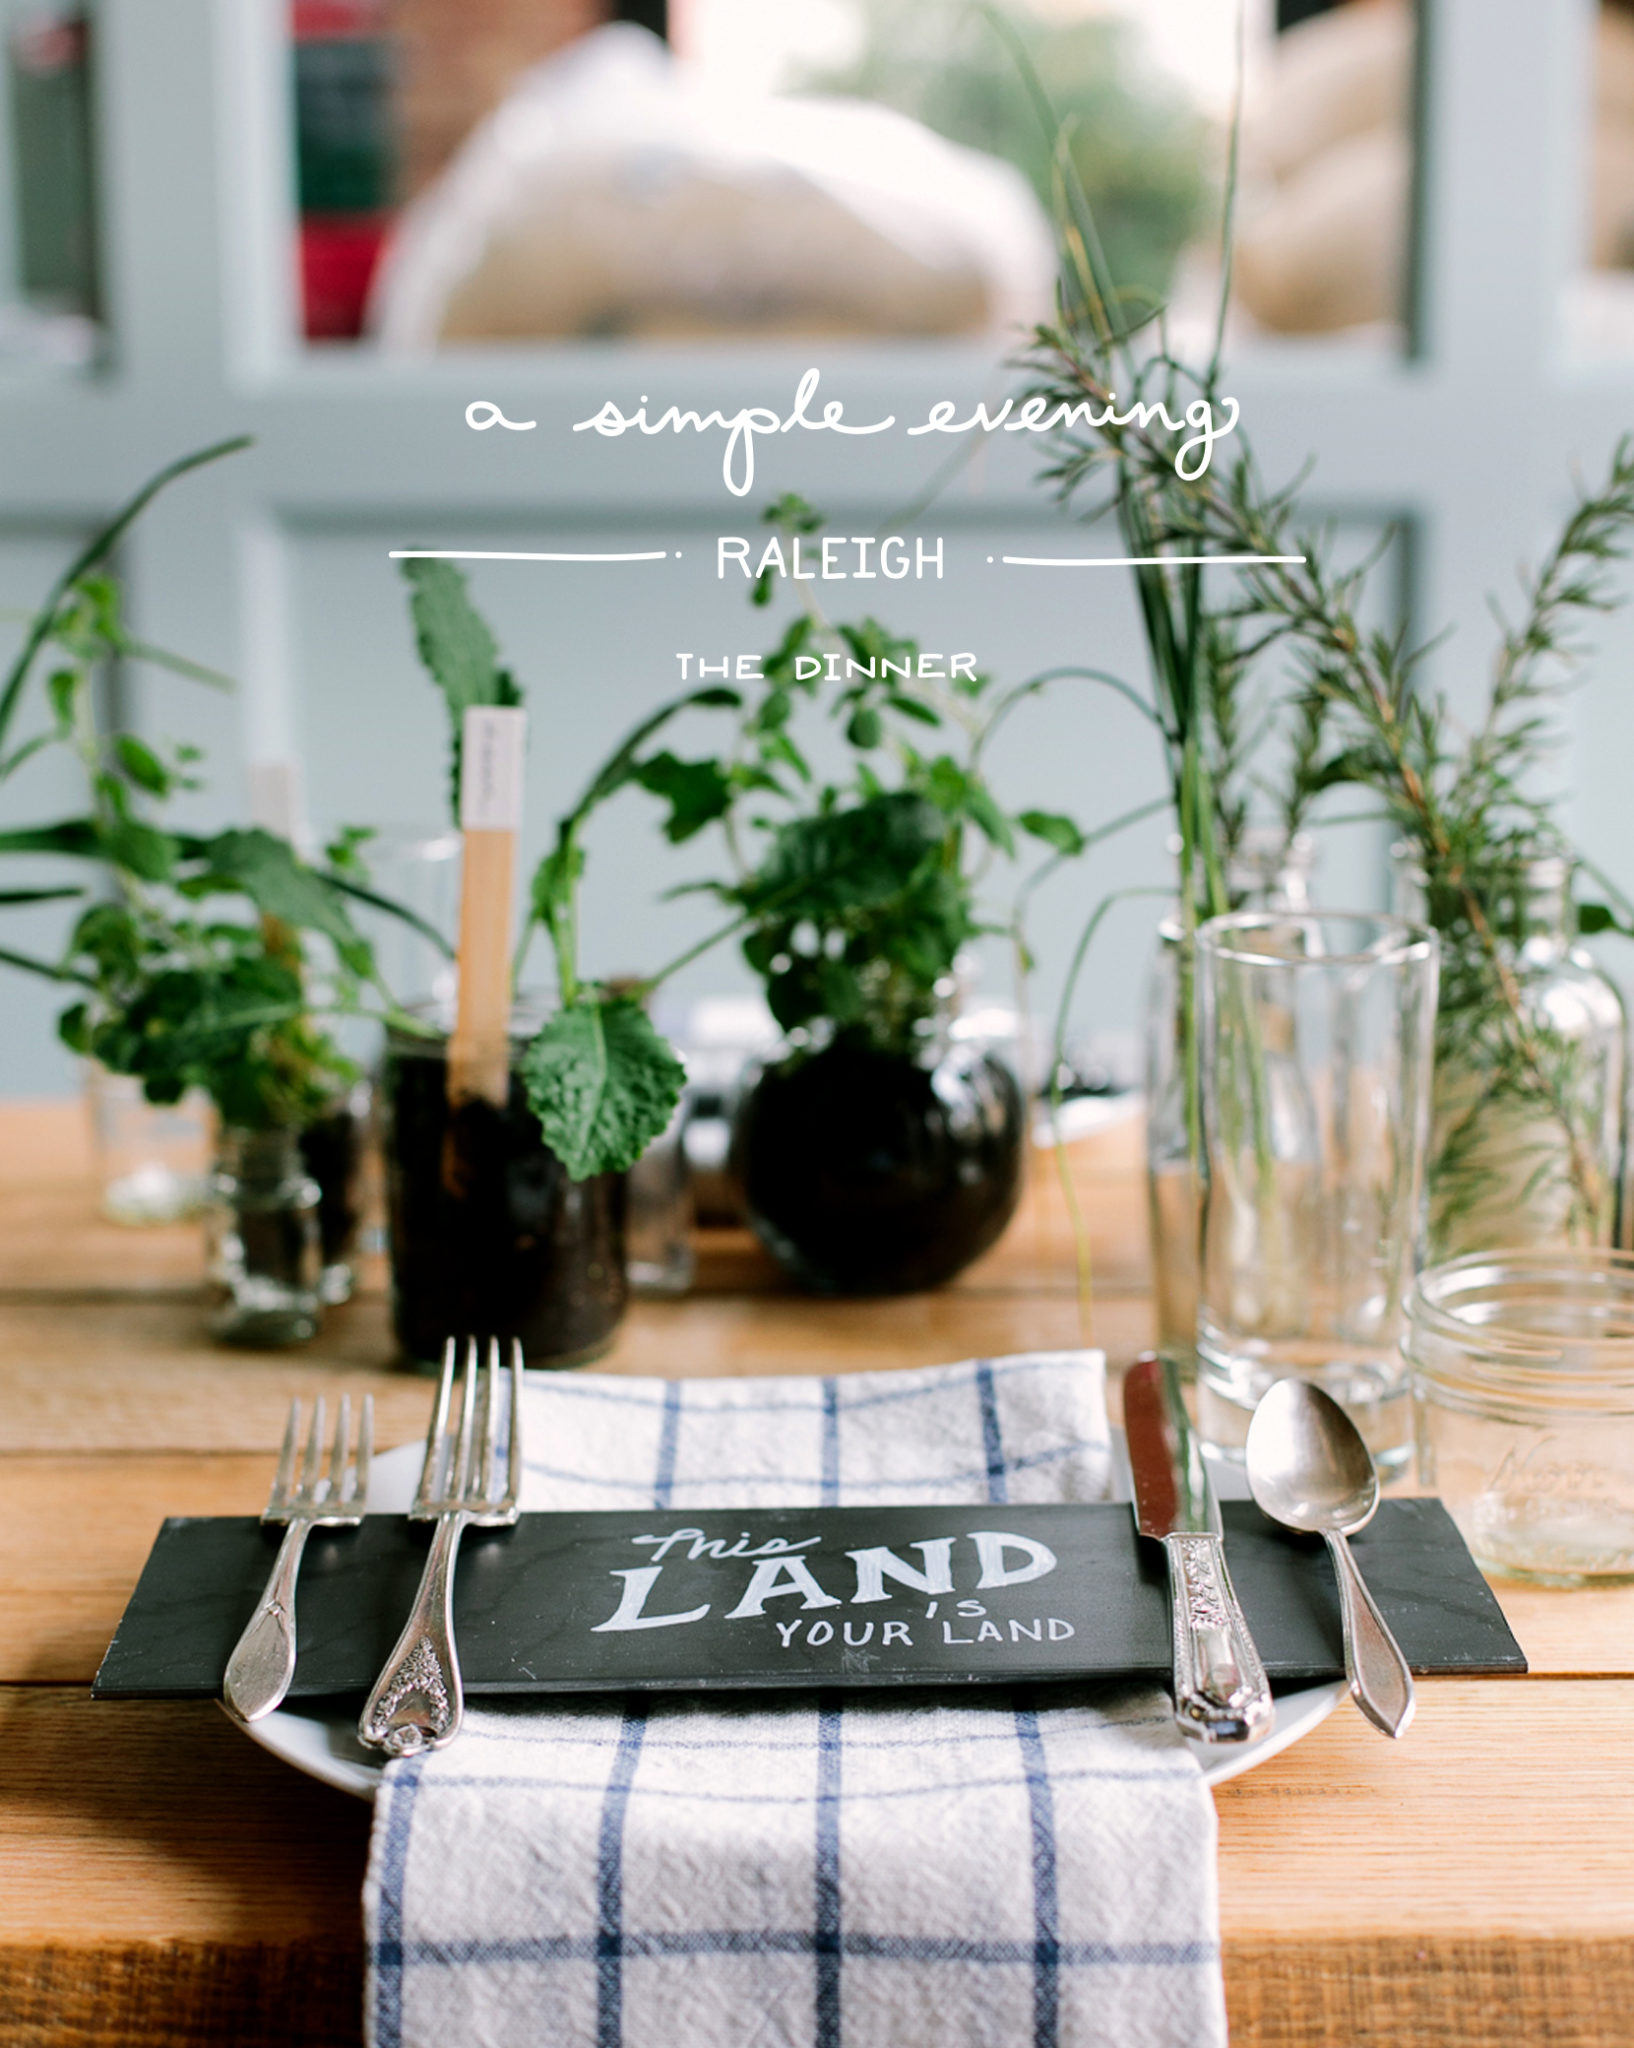 Simple Evening - Raleigh: The Dinner | The Fresh Exchange